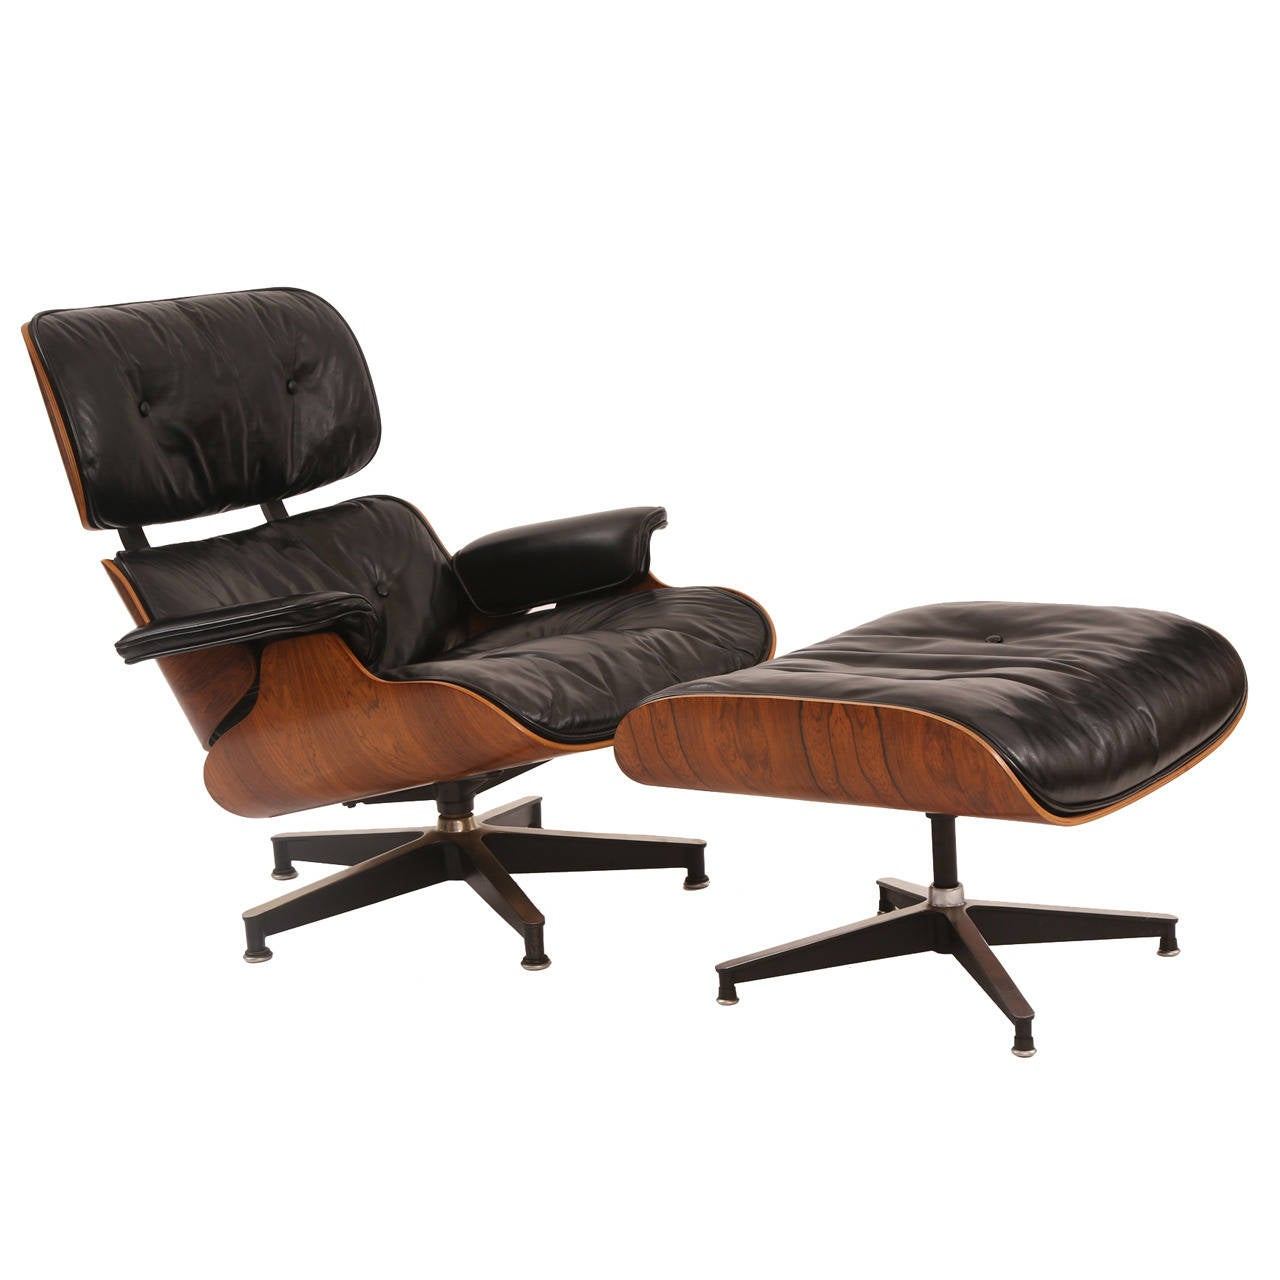 Eames for herman miller rosewood 670 chair and ottoman at - Herman miller lounge chair and ottoman ...